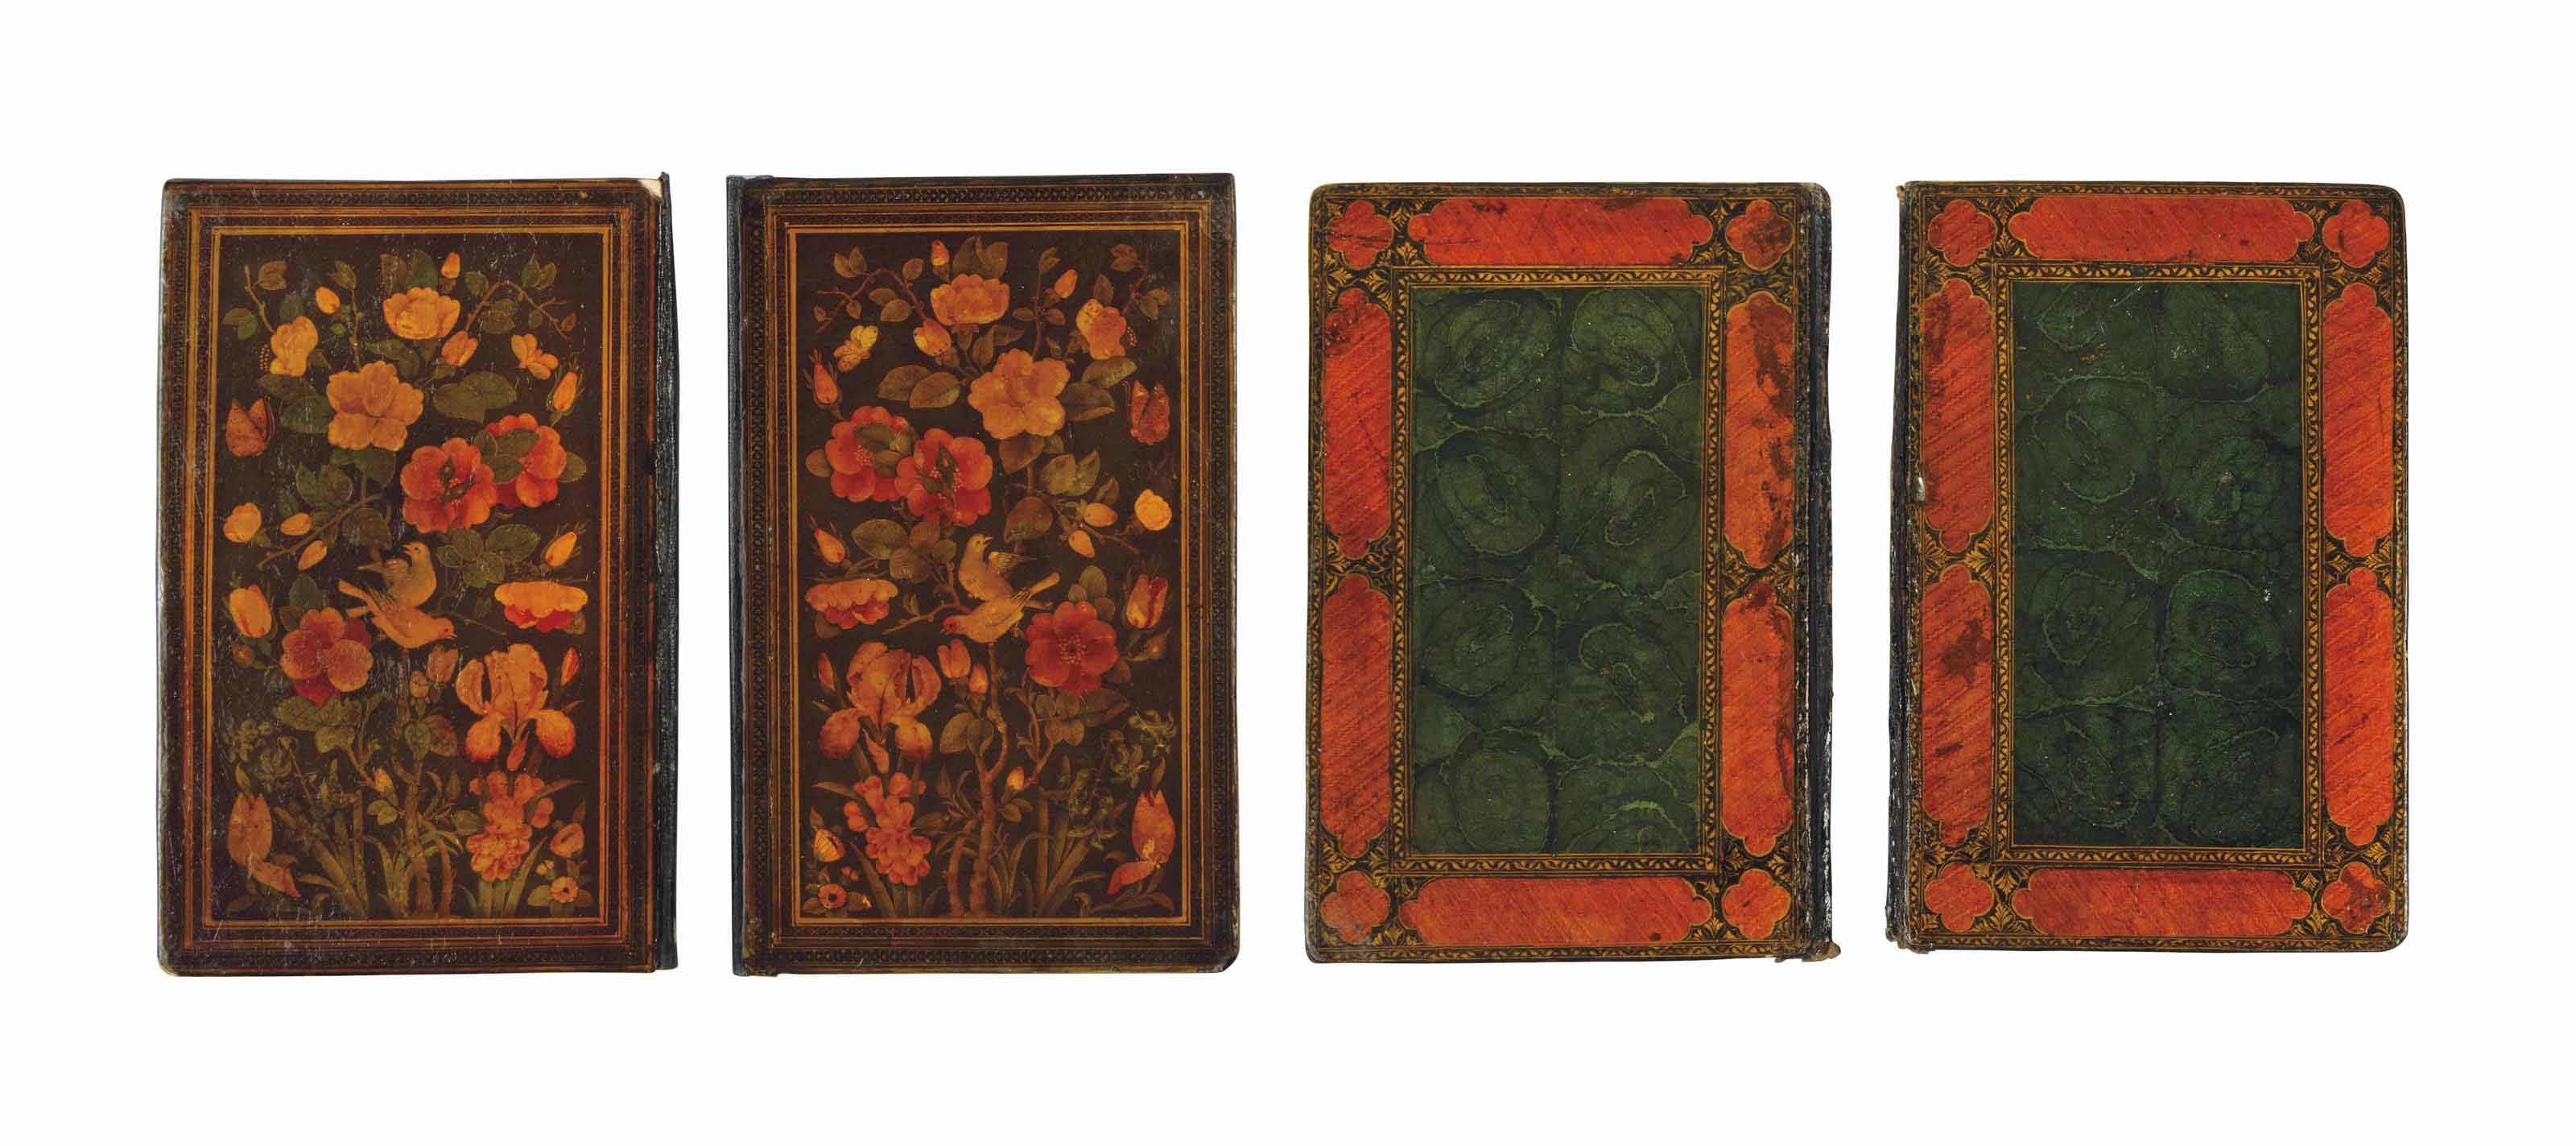 TWO QAJAR LACQUER BOOK BINDING